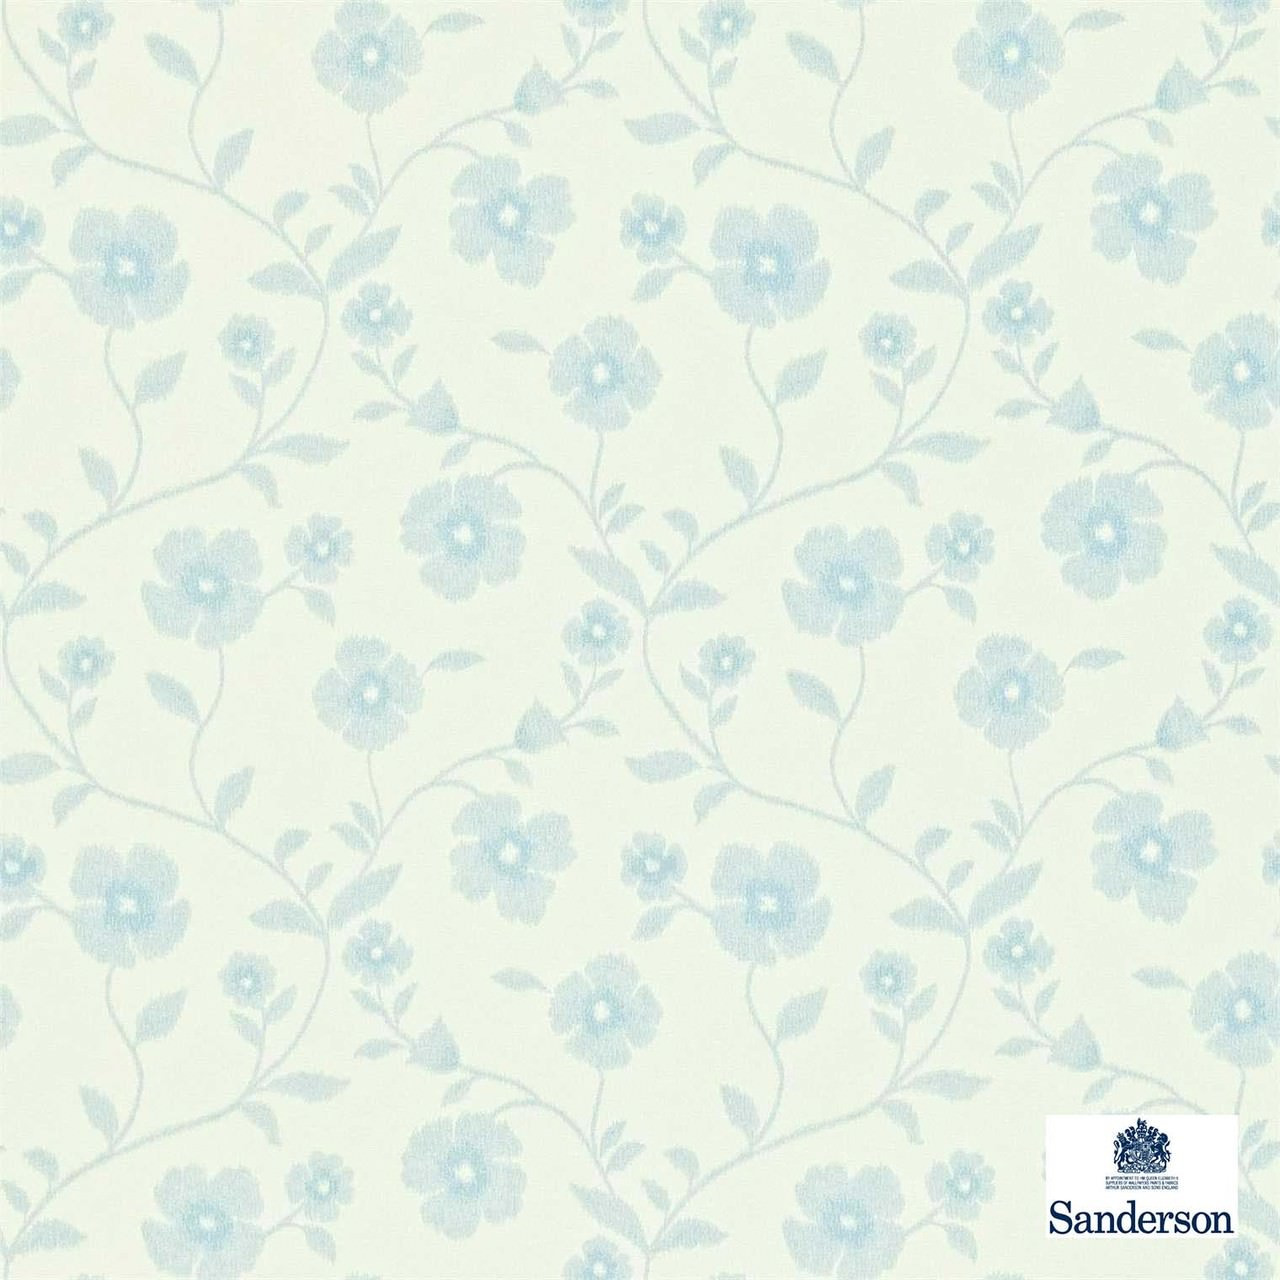 Sanderson Sabine 212003  | Wallpaper, Wallcovering - Blue, Farmhouse, Floral, Garden, Domestic Use